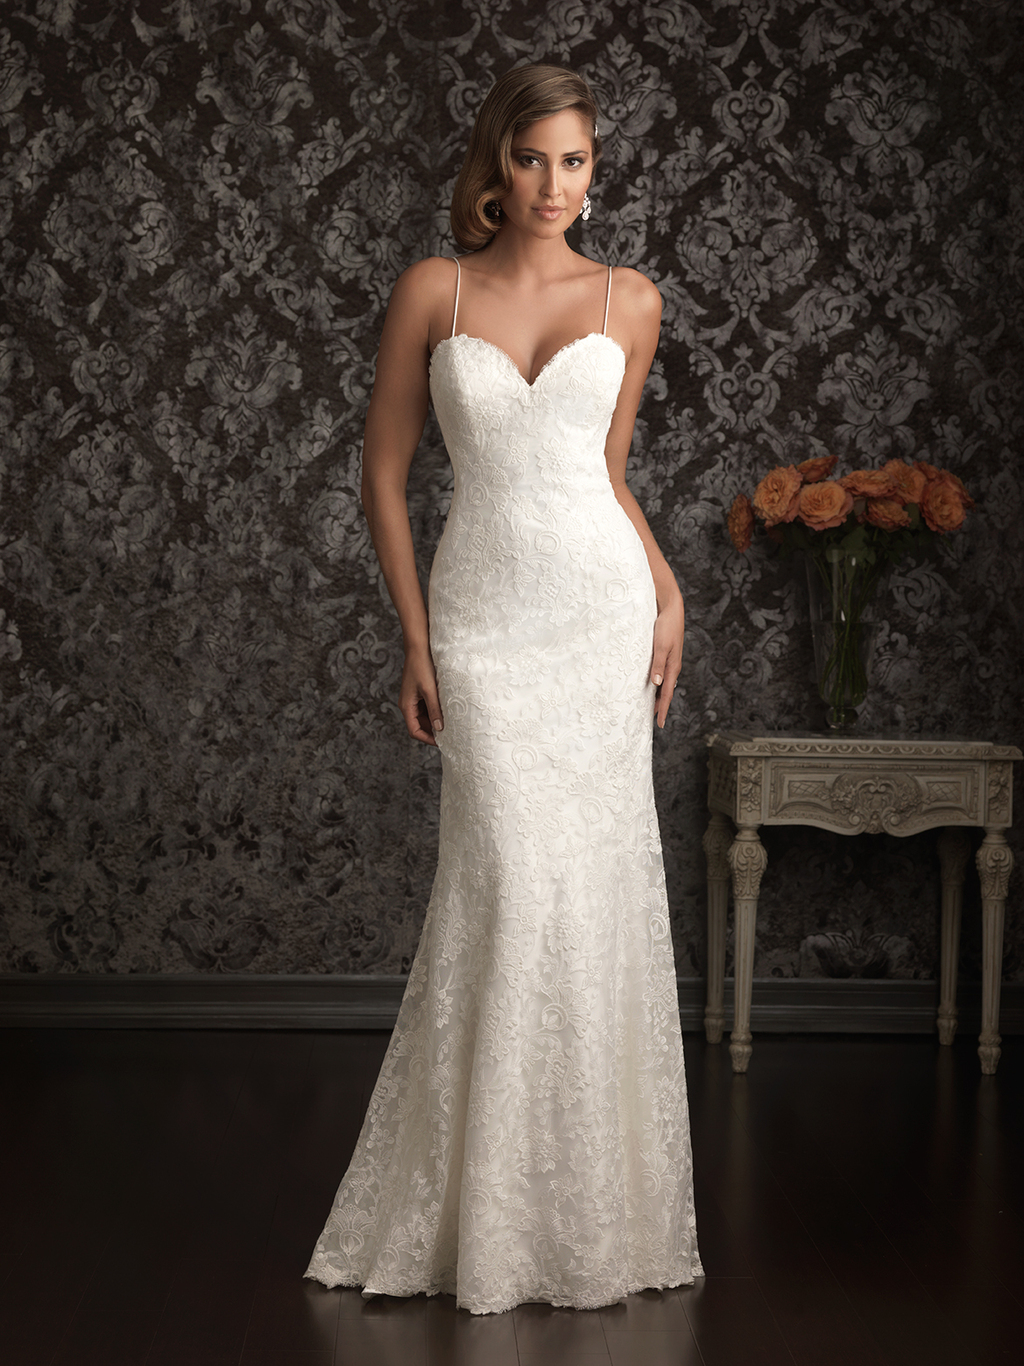 Allure-bridals-wedding-dress-bridal-gown-allure-collection-sweetheart-9021f.full